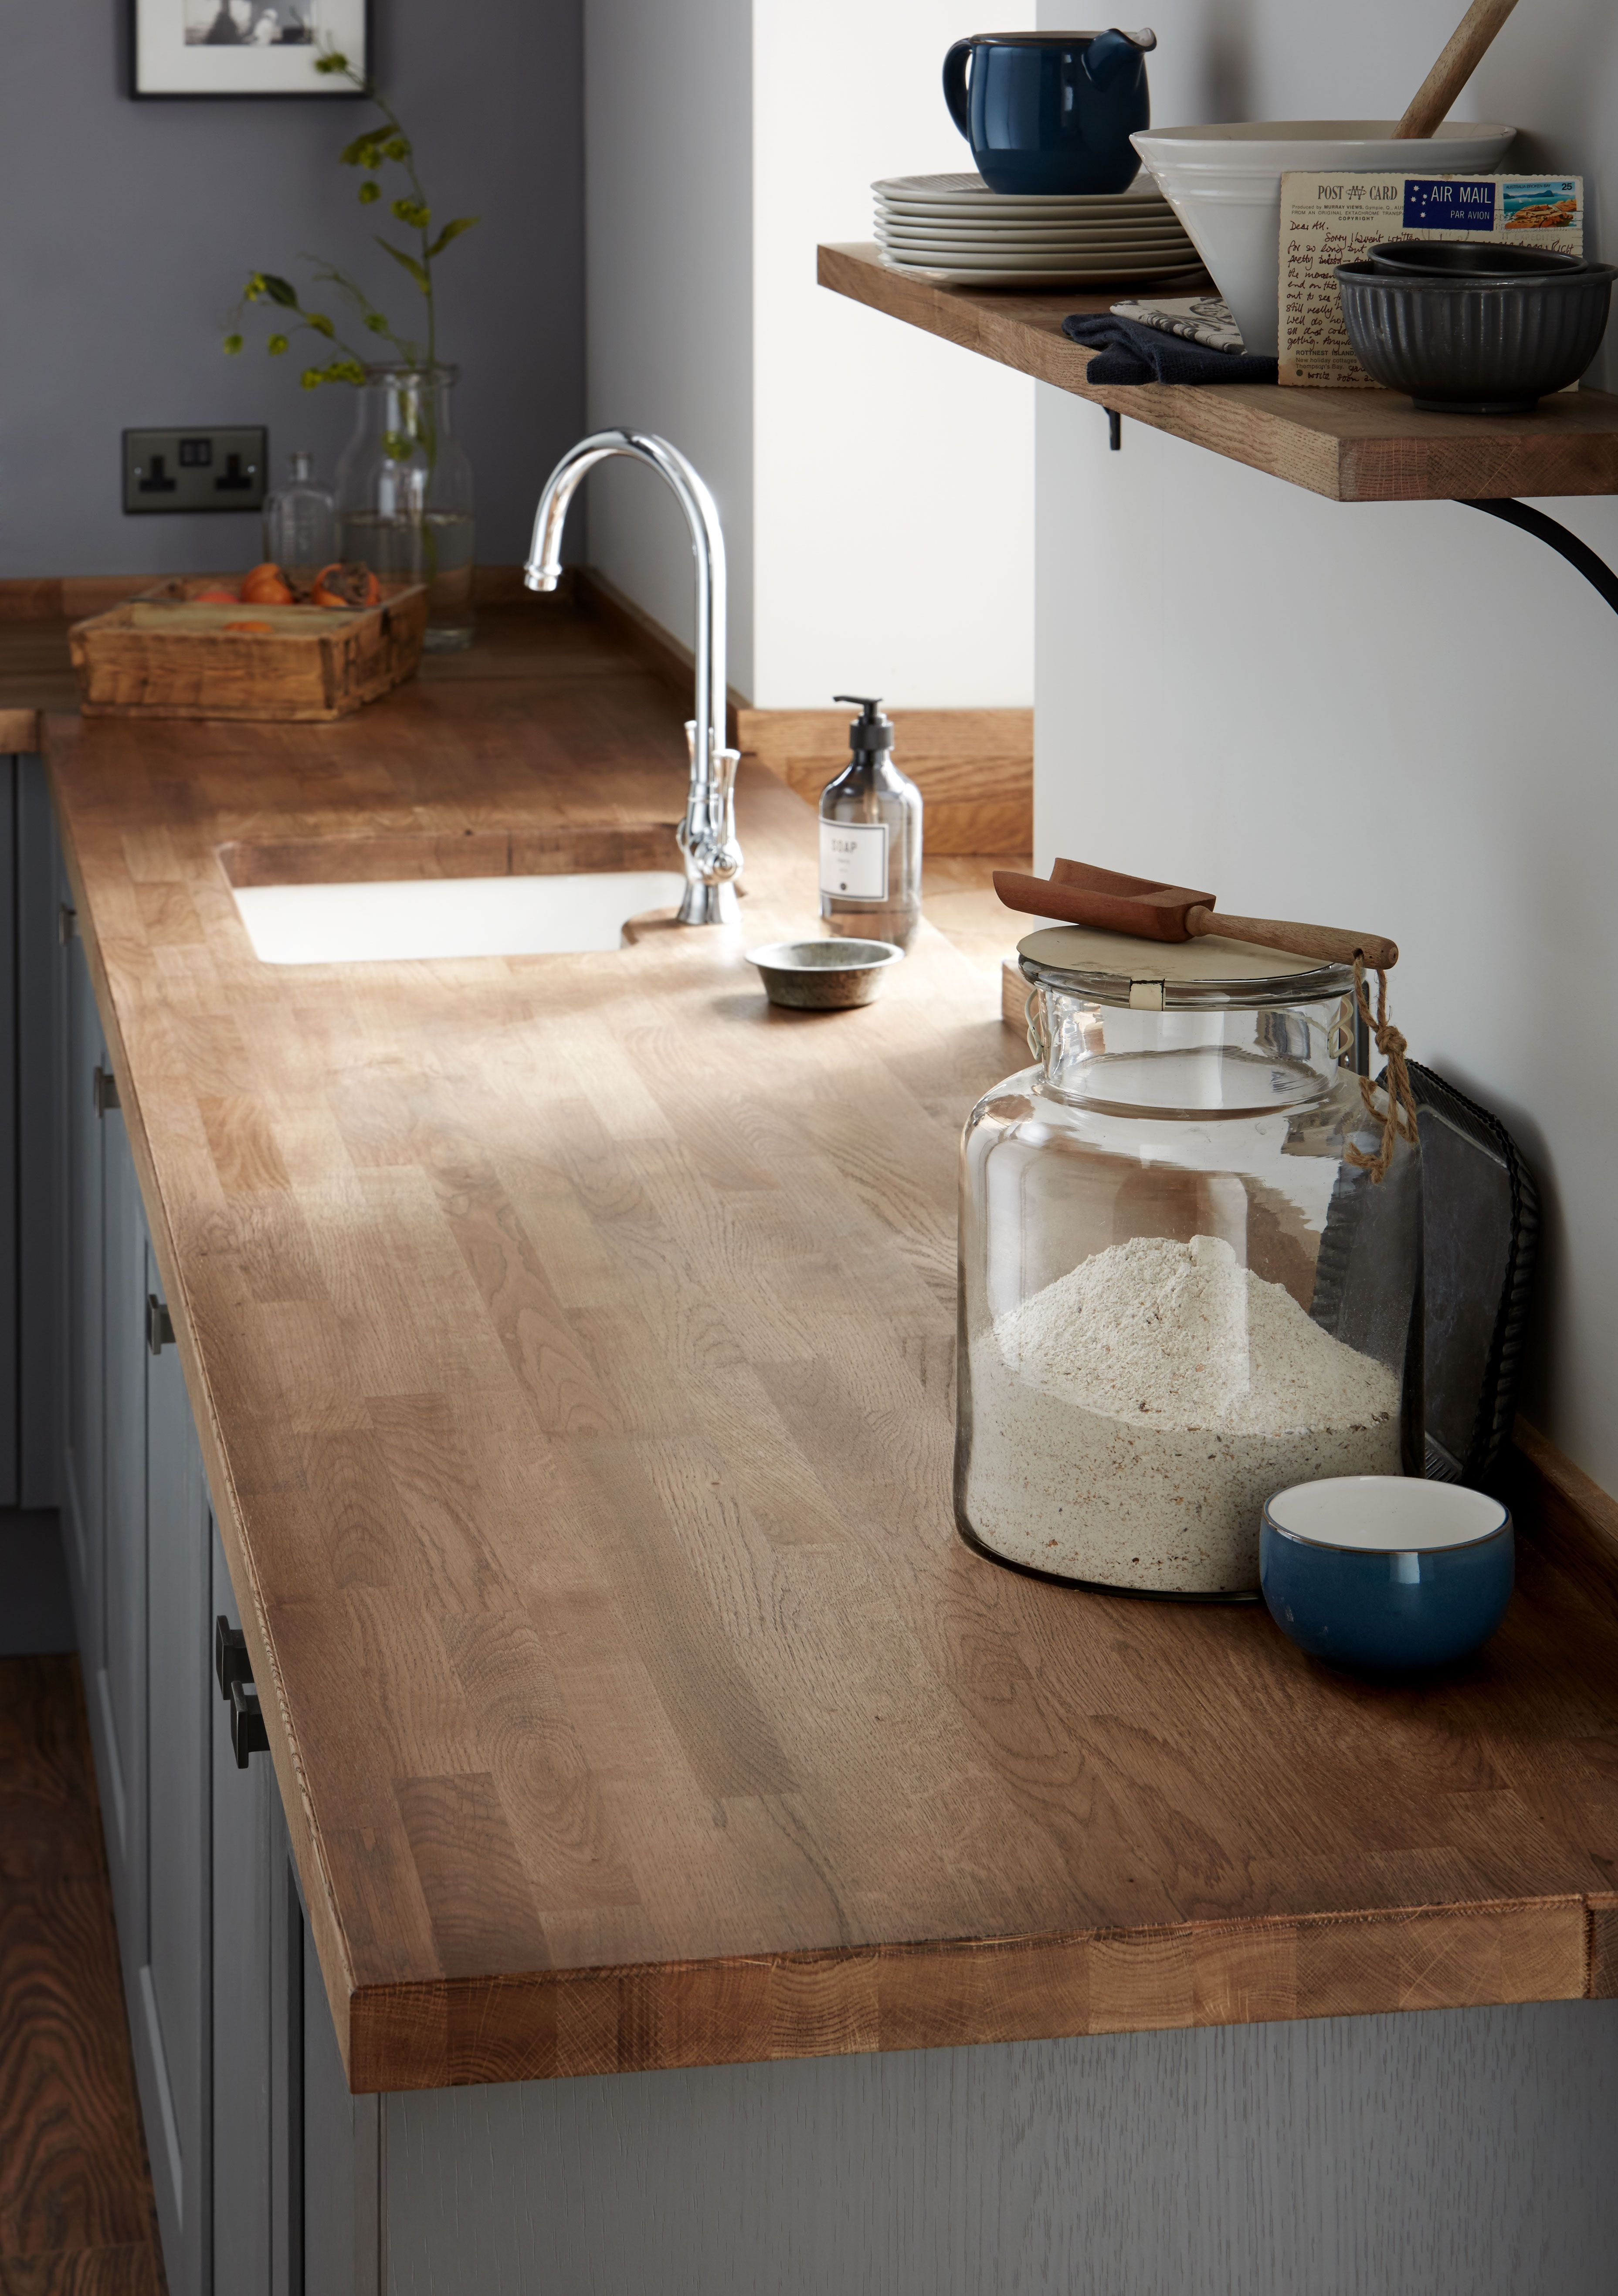 A classically inspired swan neck tap and a solid oak block worktop ...